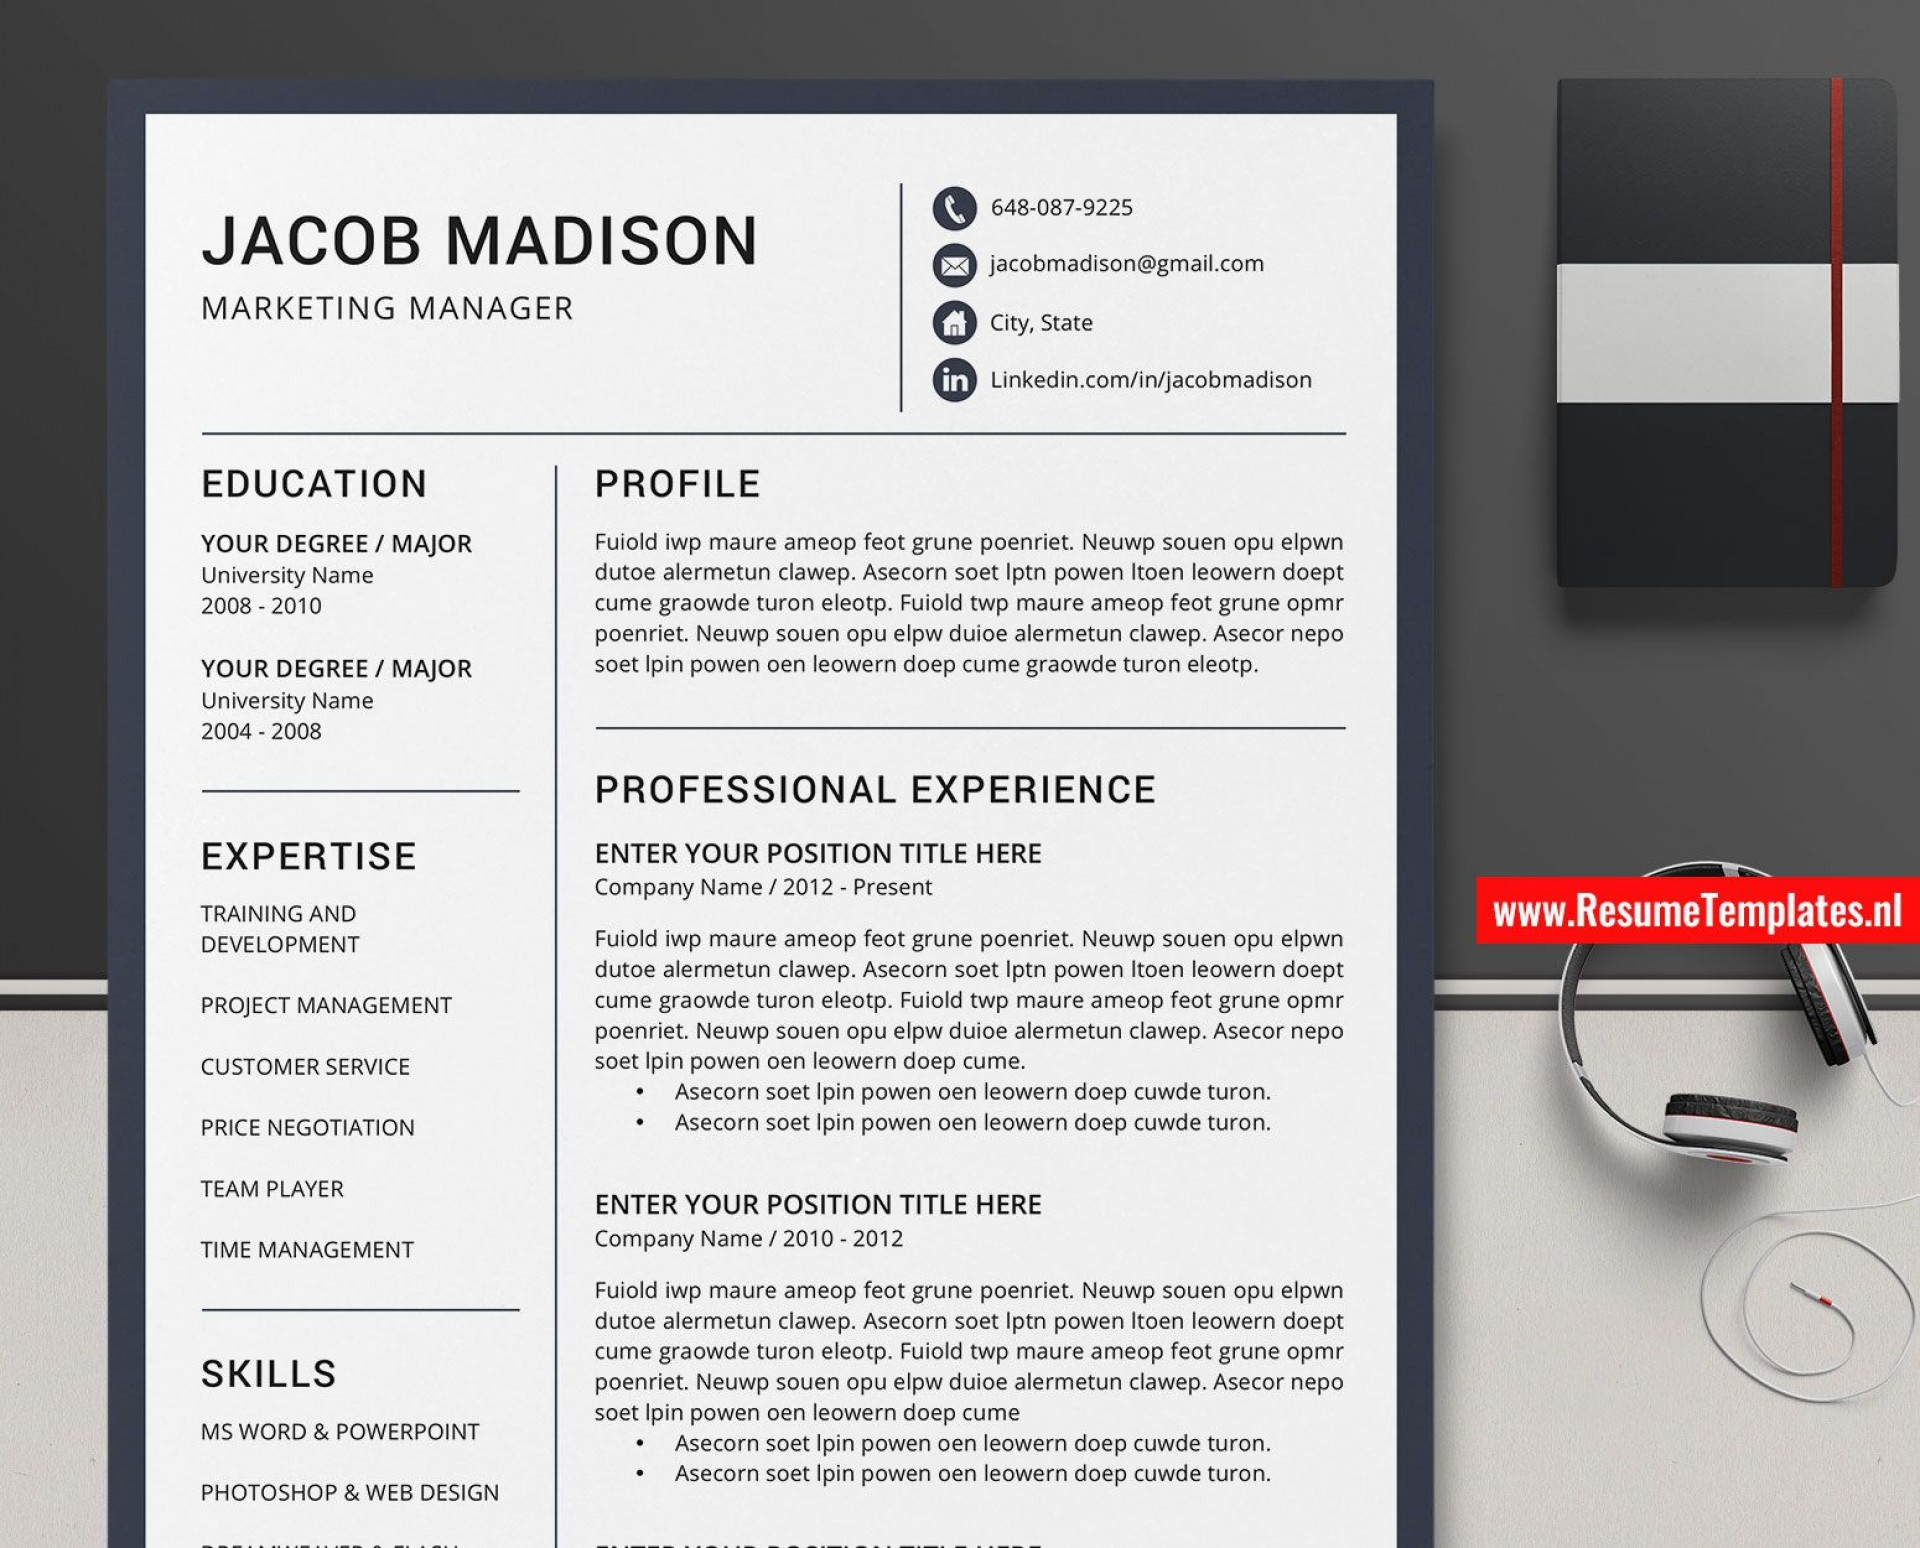 009 Stupendou Window Resume Cover Letter Template High Definition  Templates1920